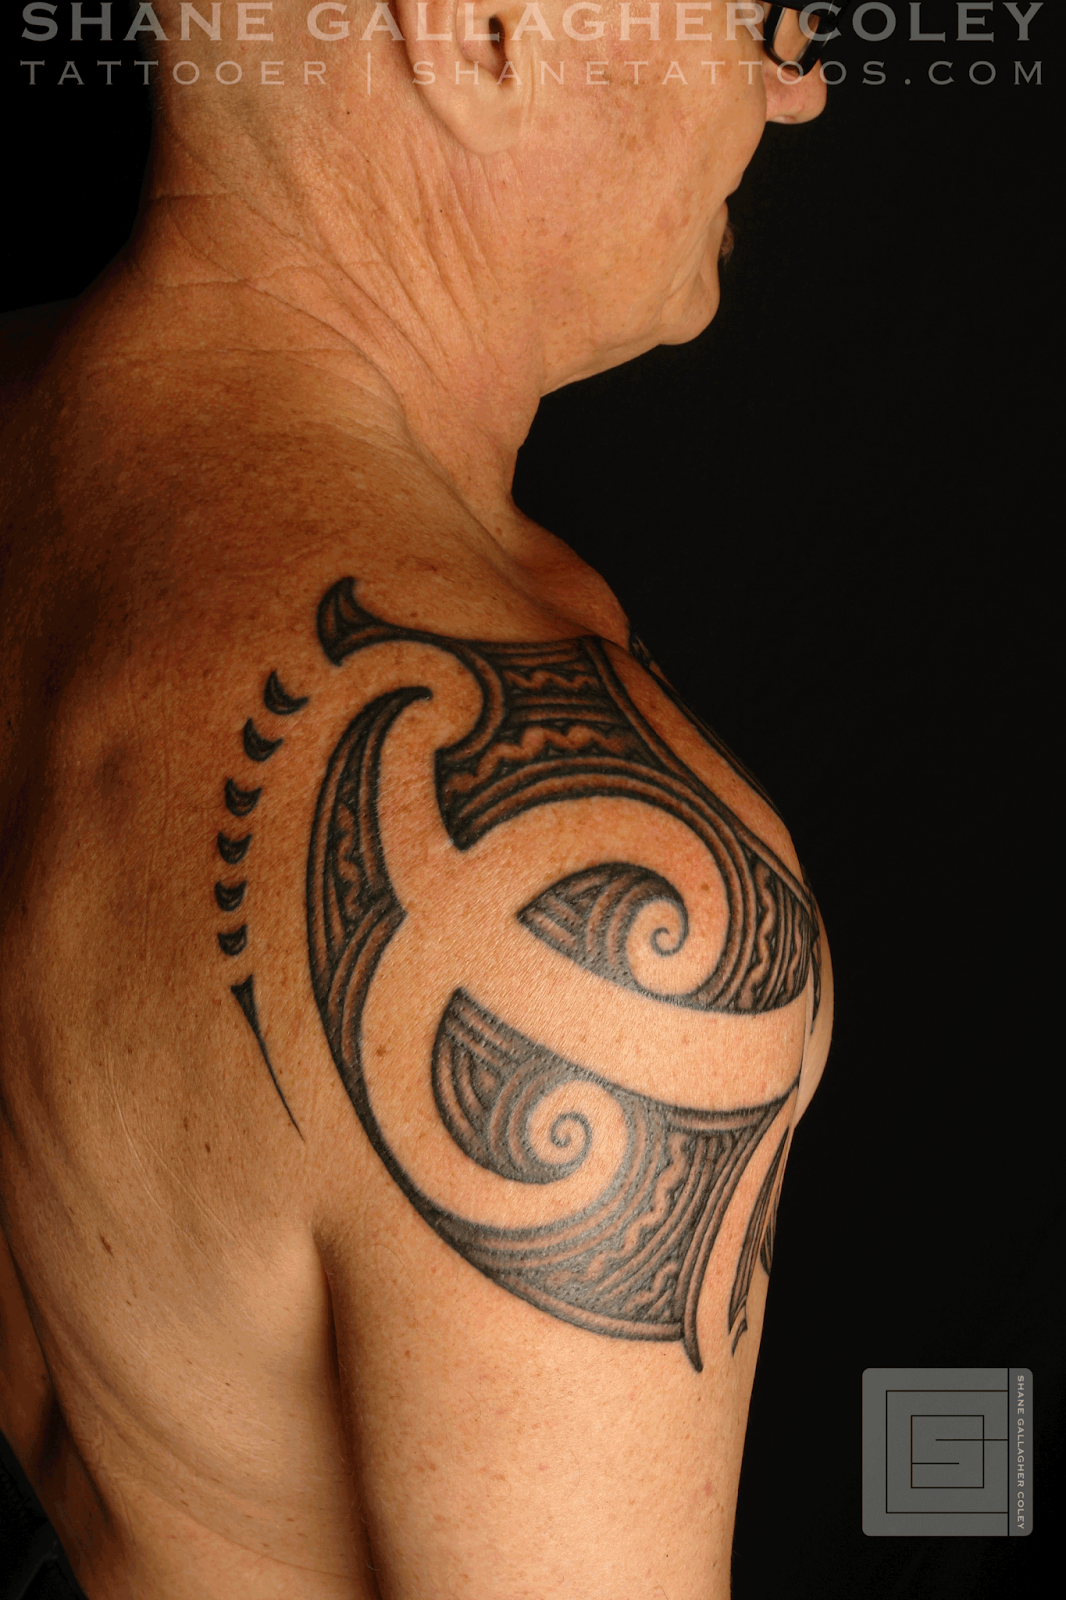 shane tattoos maori shoulder chest ta moko tattoo. Black Bedroom Furniture Sets. Home Design Ideas